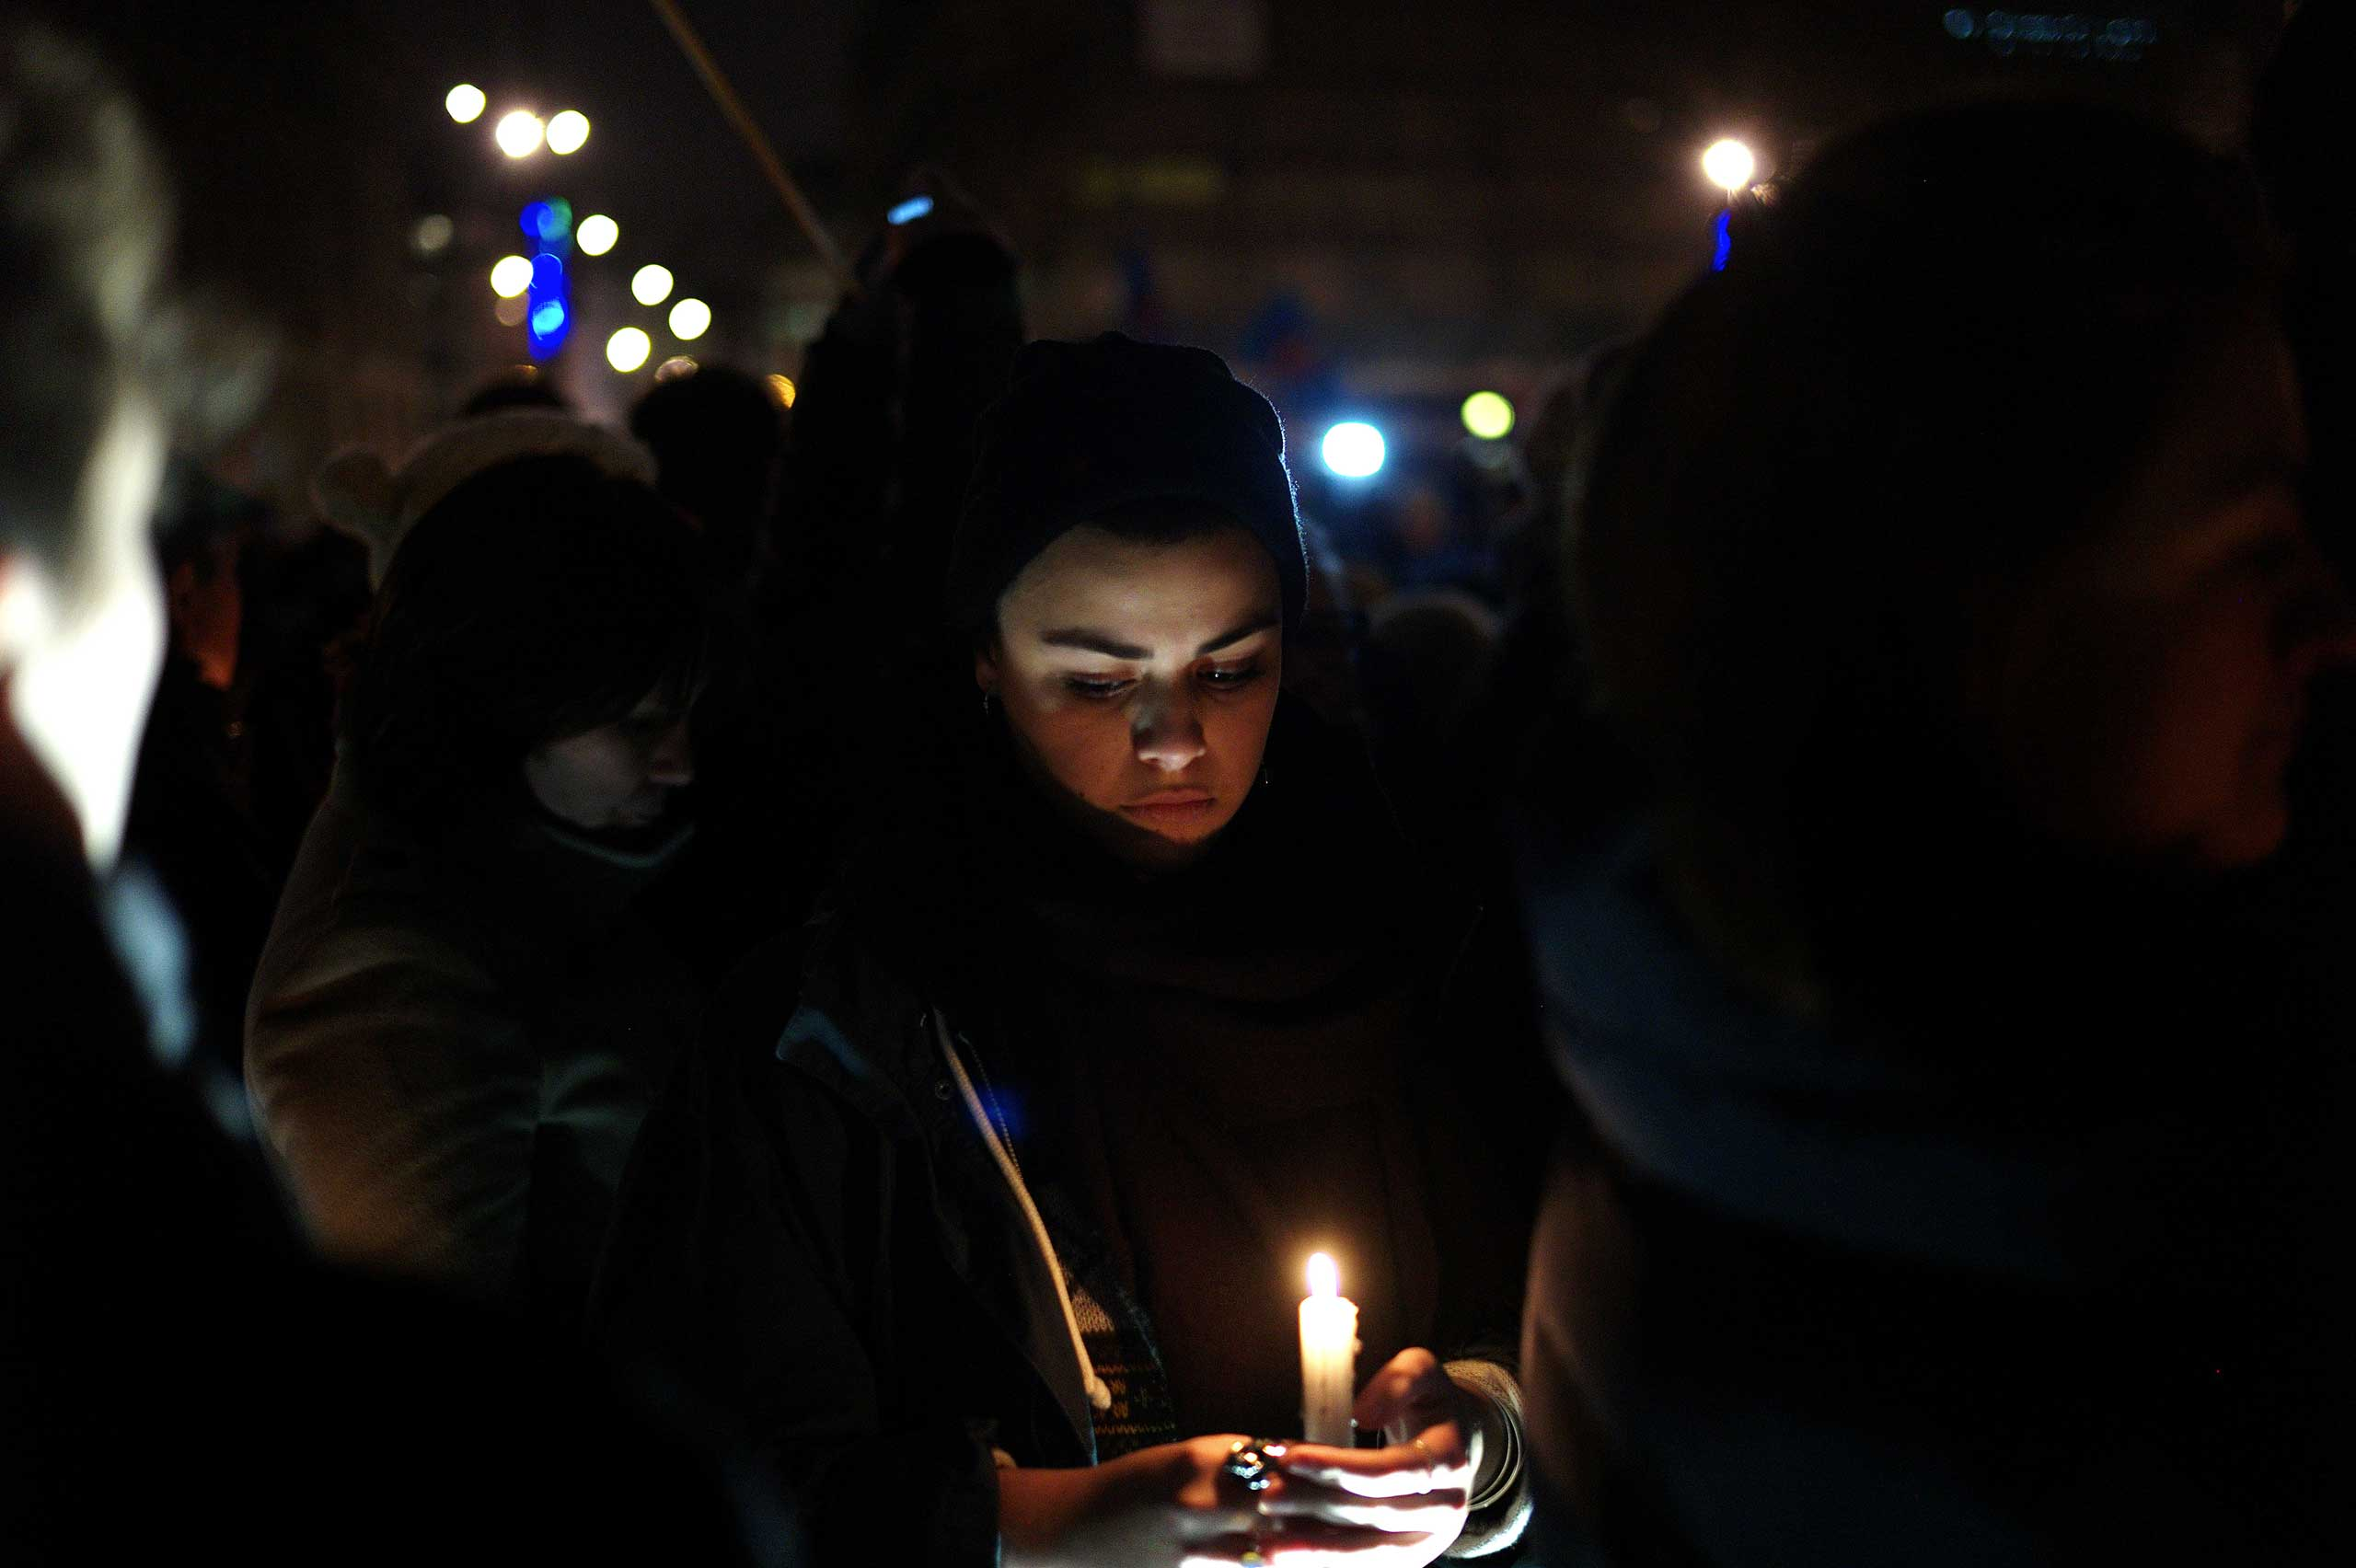 A woman holds a candle during a gathering to pay respect for the victims of a terror attack against a satirical newspaper, in Paris, Jan. 7, 2015.